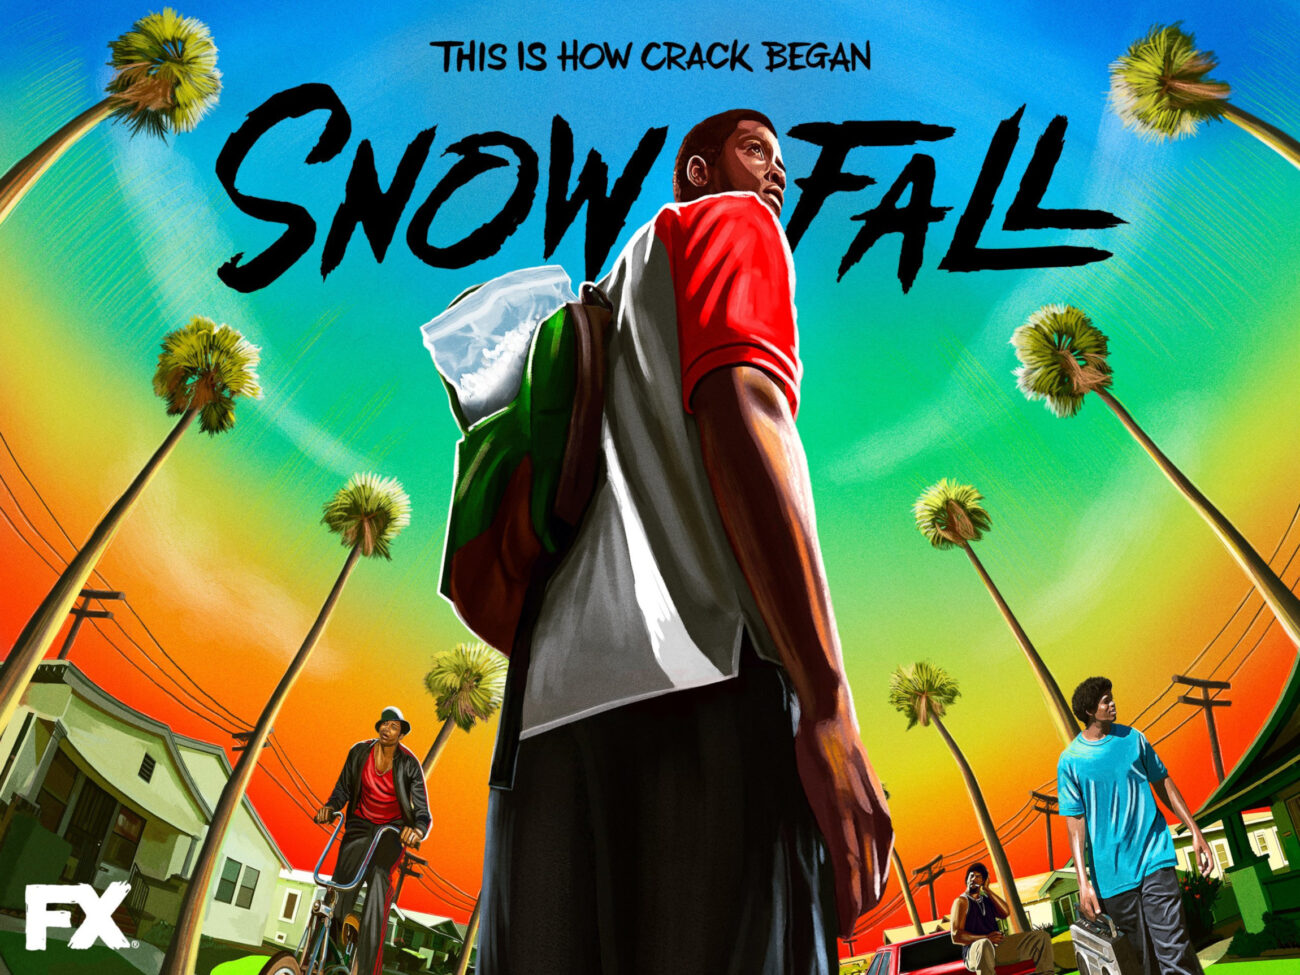 Are you curious about what the cast of 'Snowfall' has been up to? Get the latest updates before season 5 drops on FX.